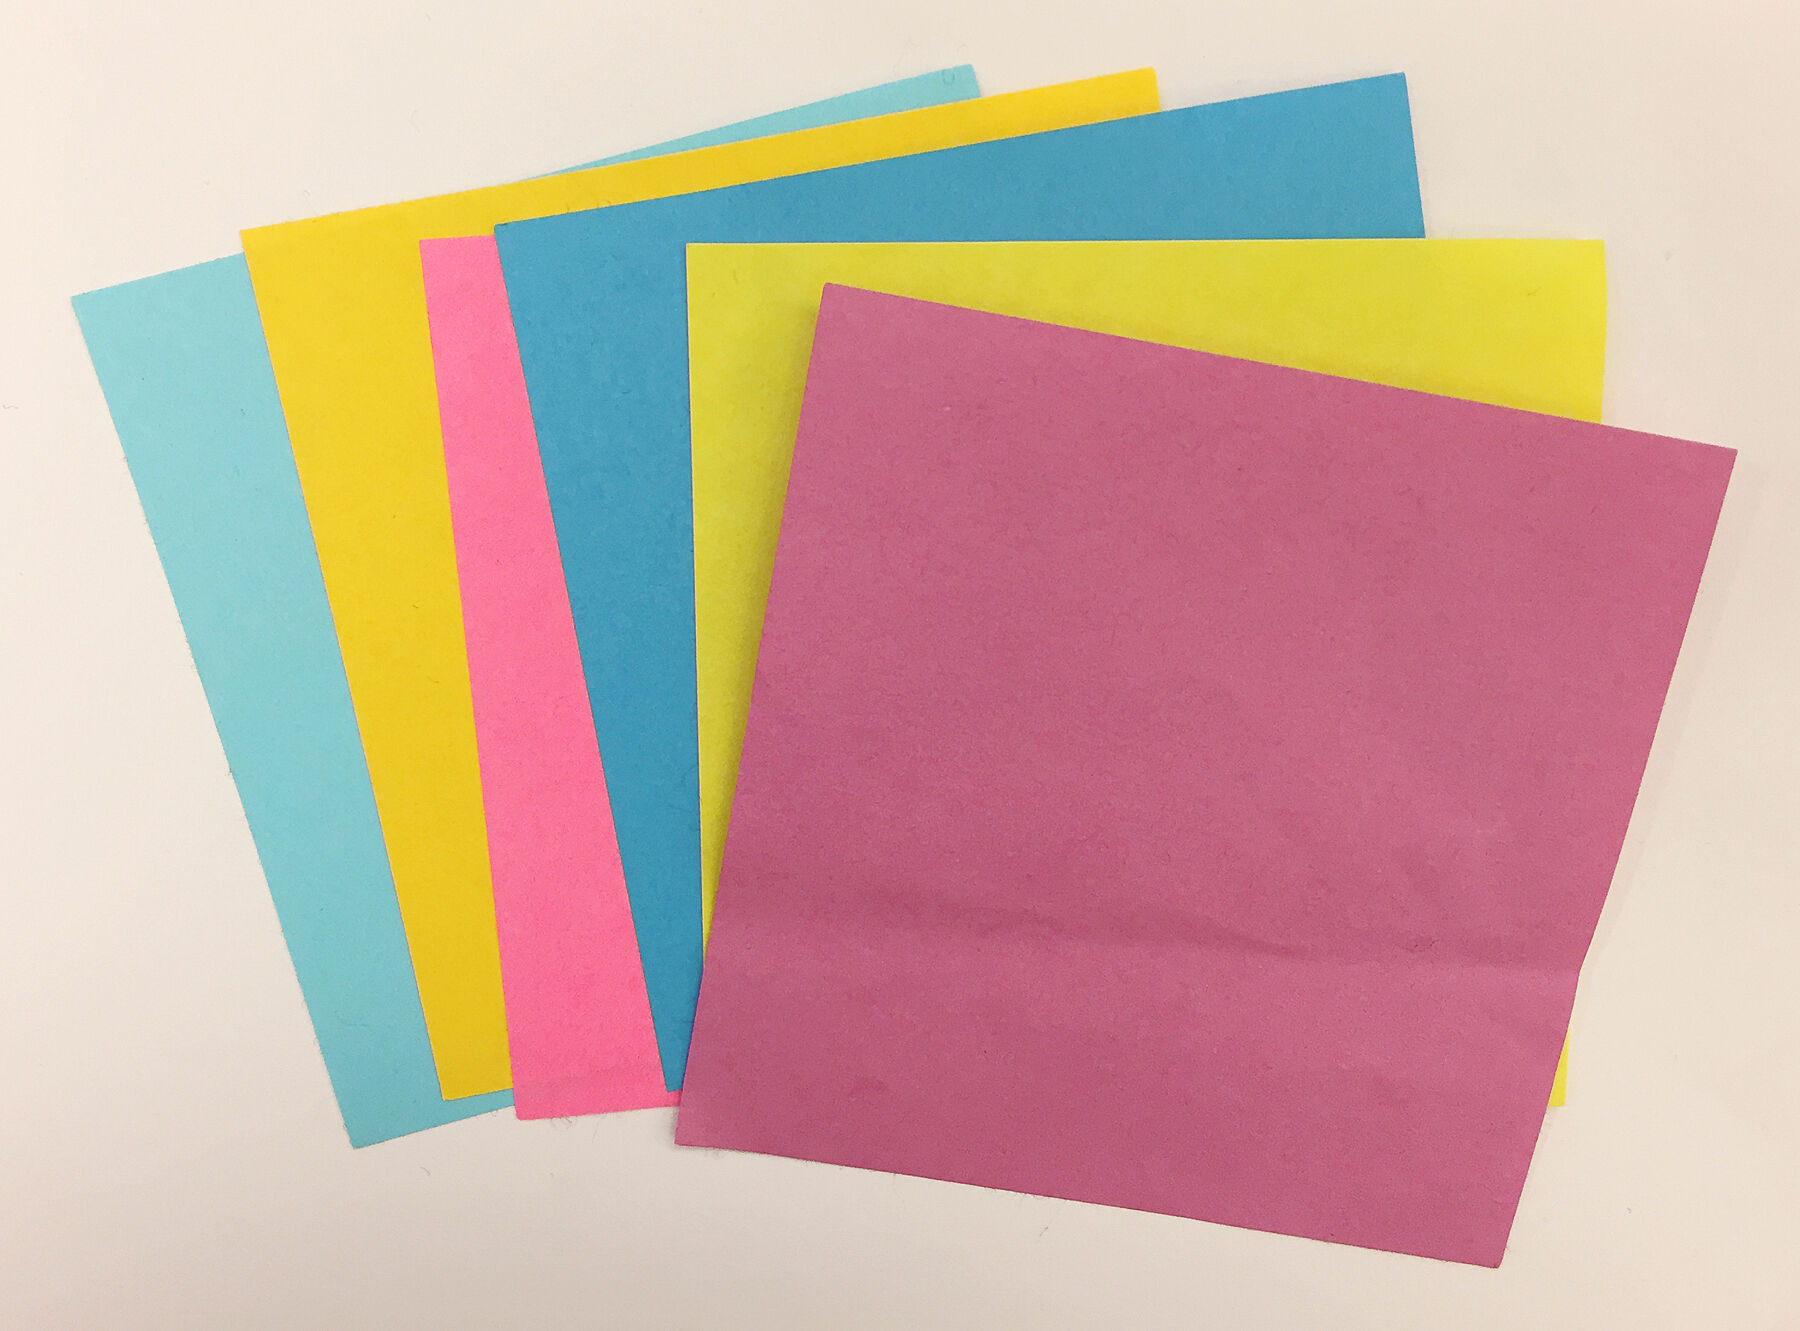 Colored paper.